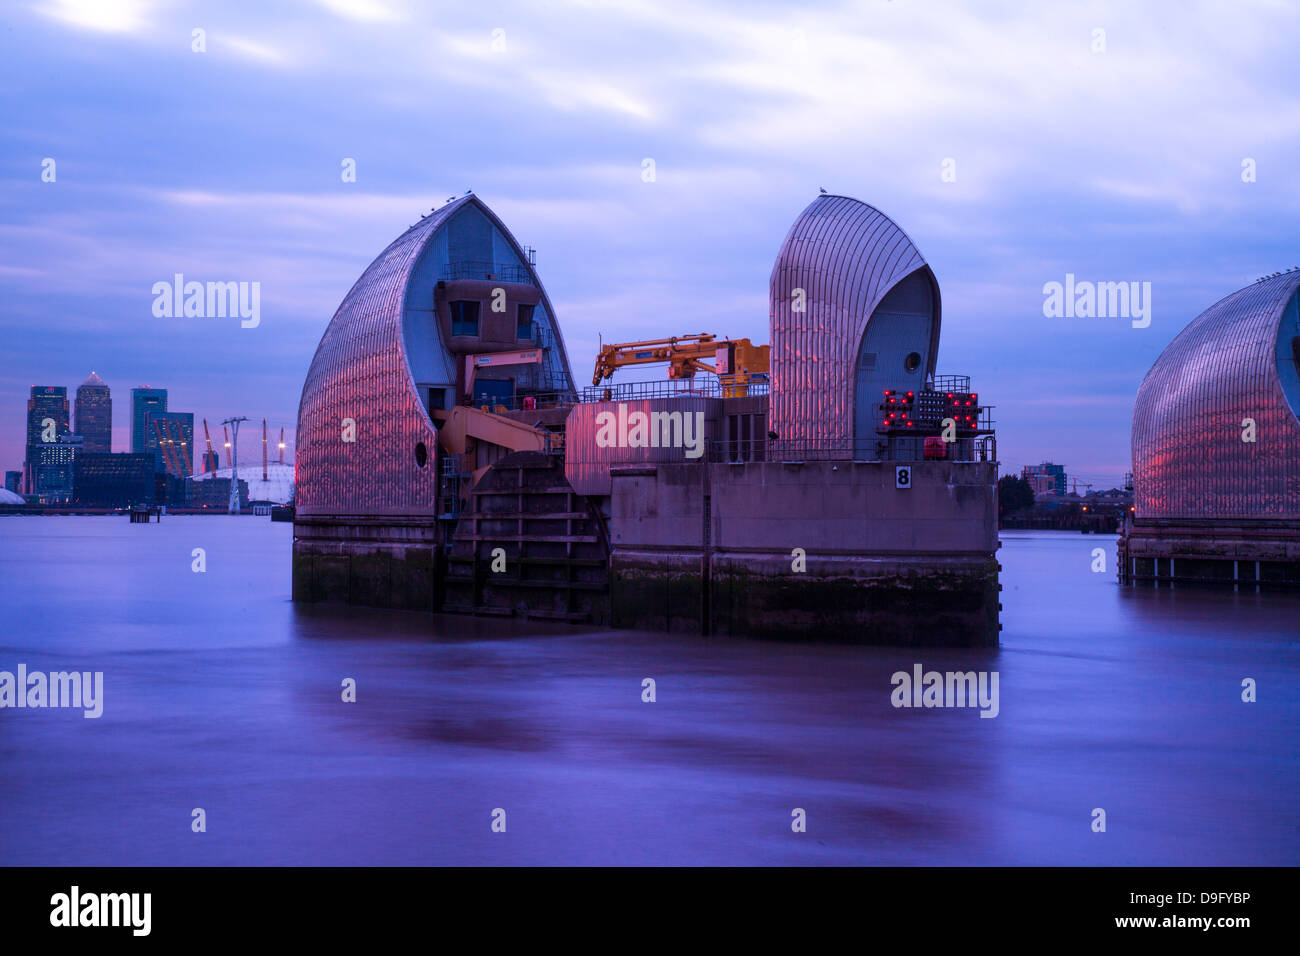 Section of the River Thames Flood Barrier at dusk with Canary Wharf and O2 Arena in the background, London, England, - Stock Image